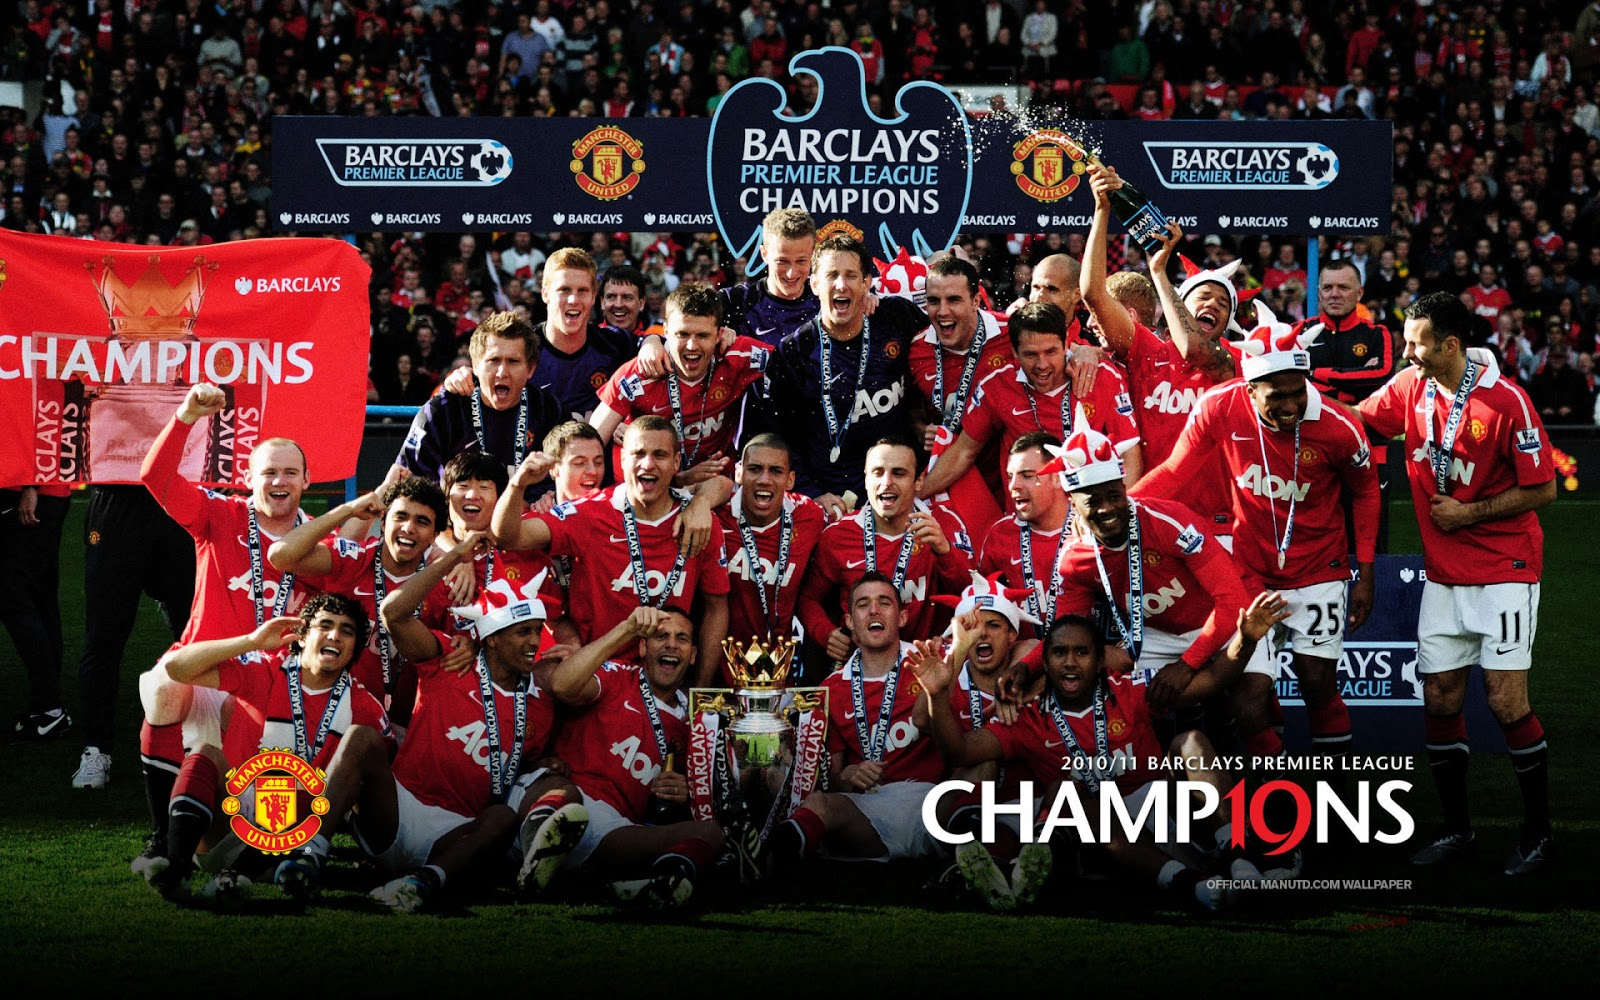 Manchester United Football Club Wallpaper - Football